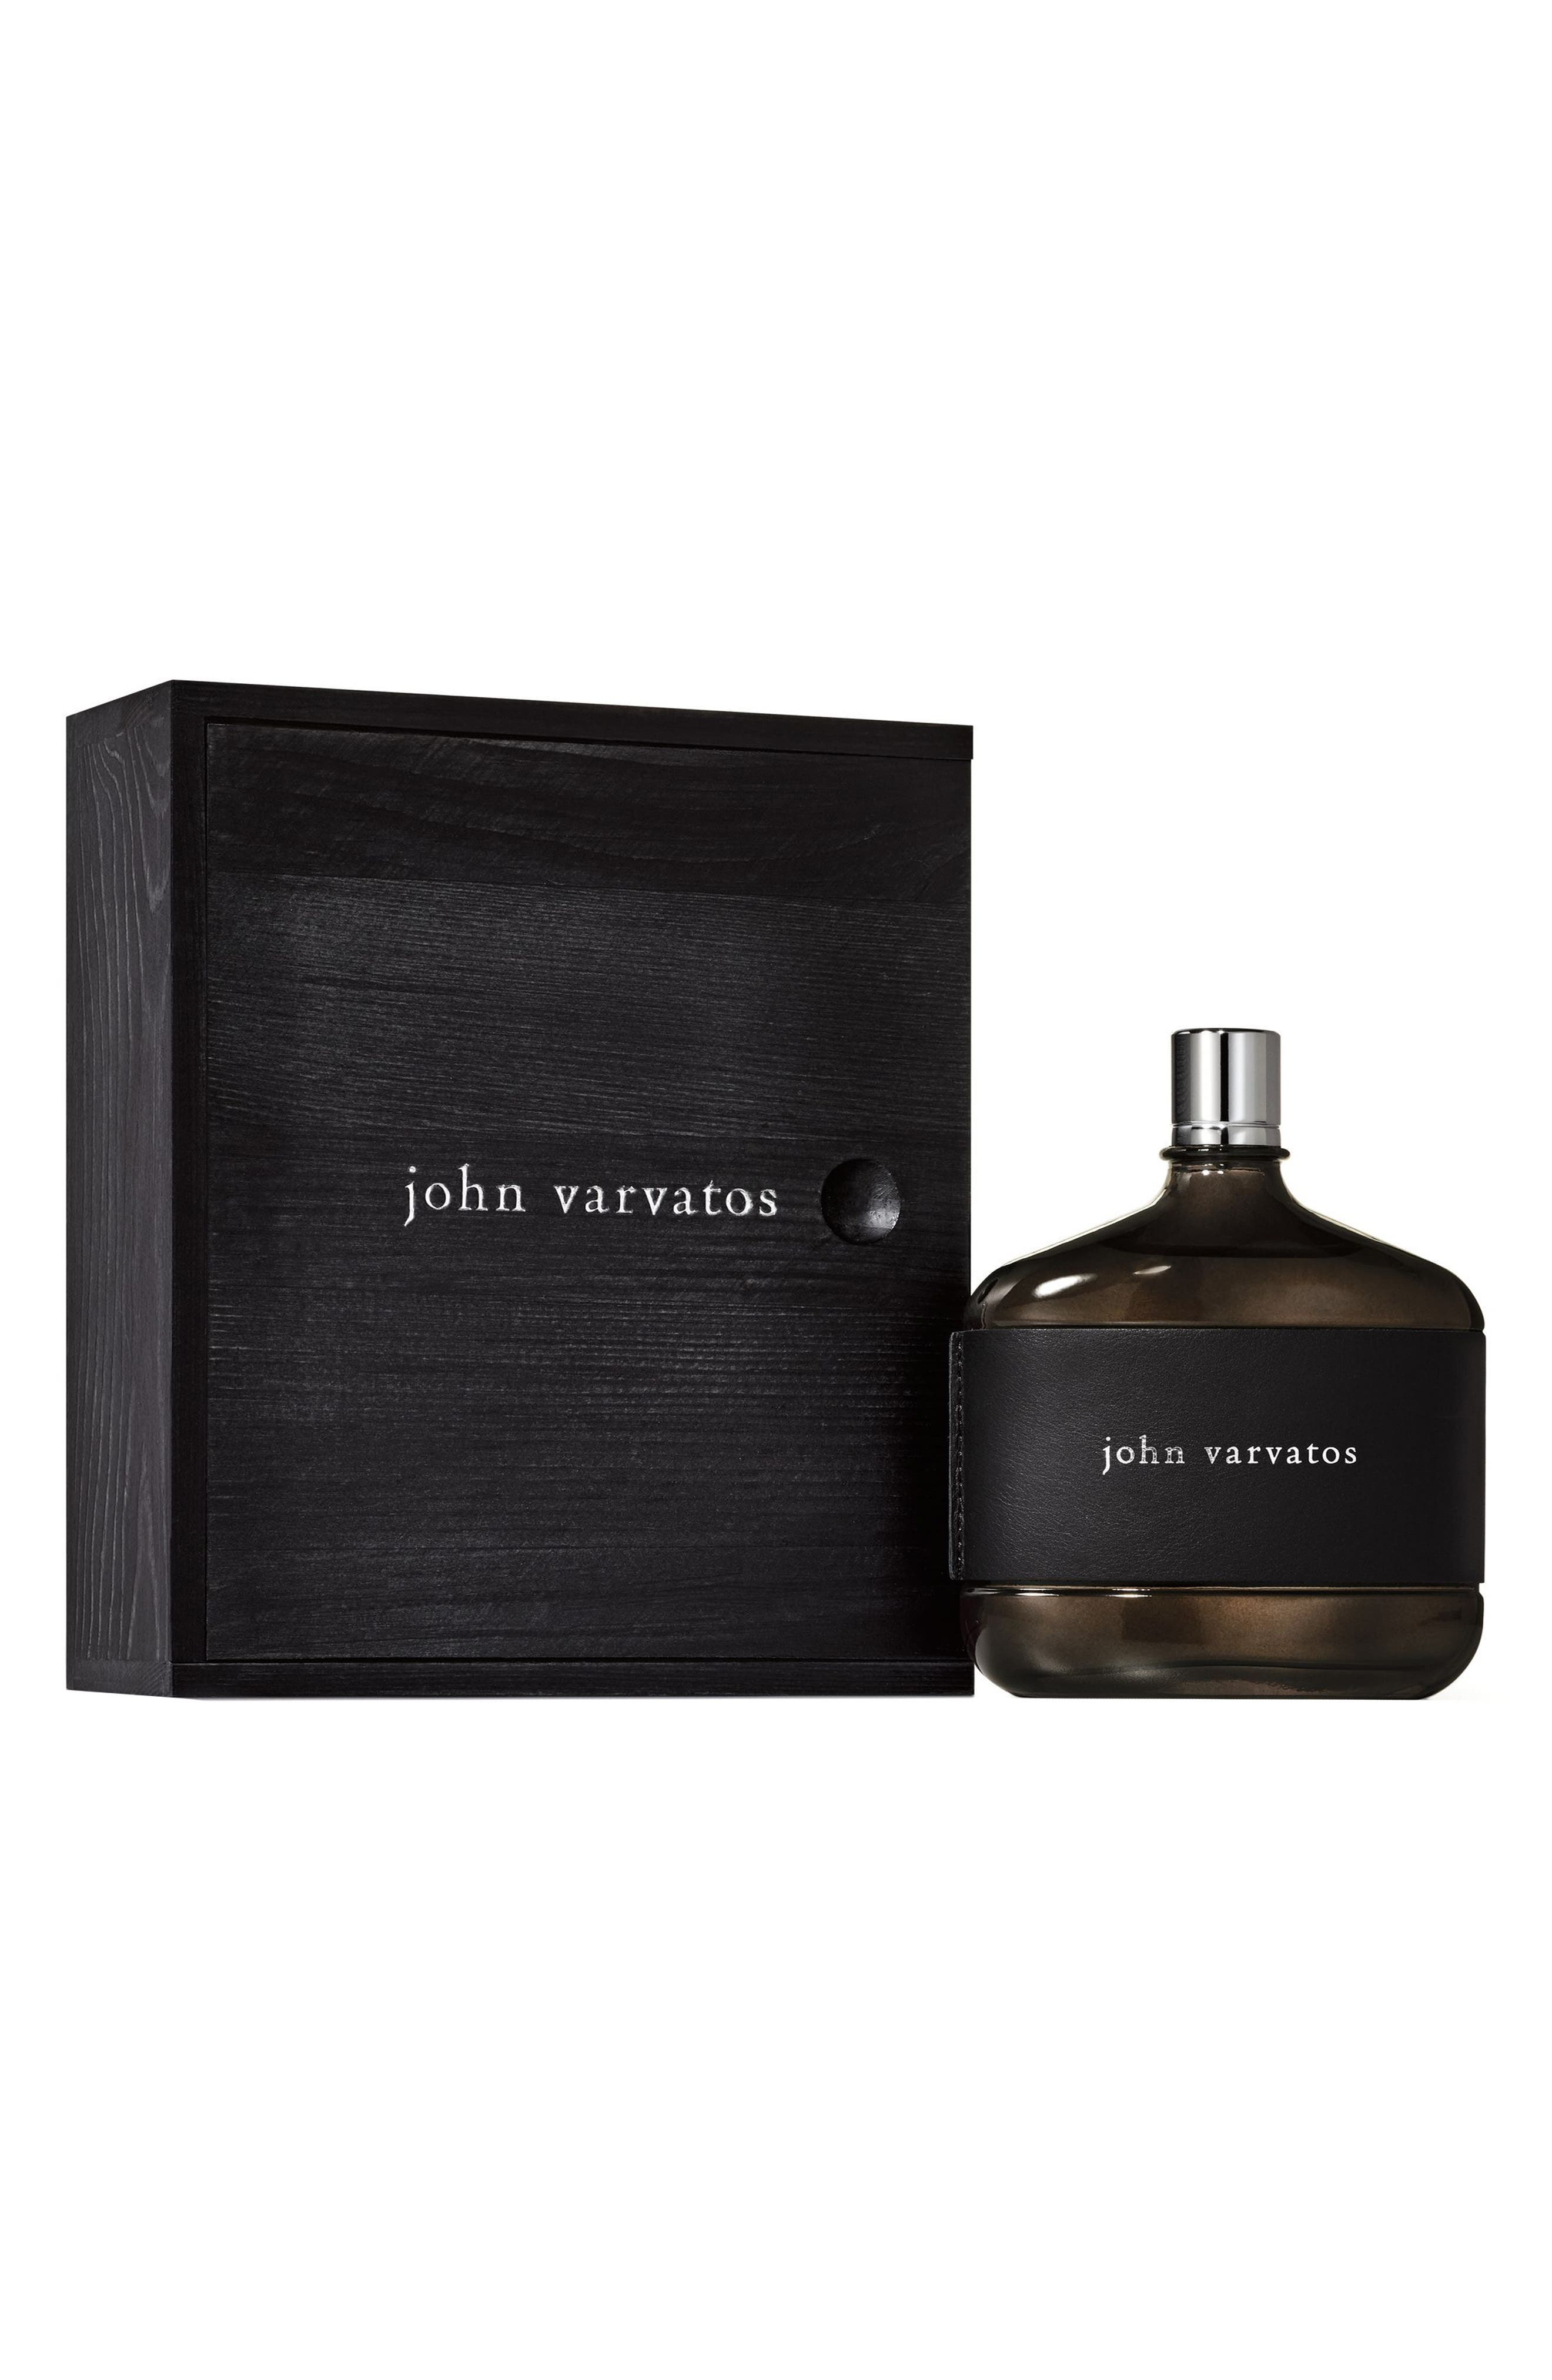 John Varvatos Eau de Toilette (Limited Edition)